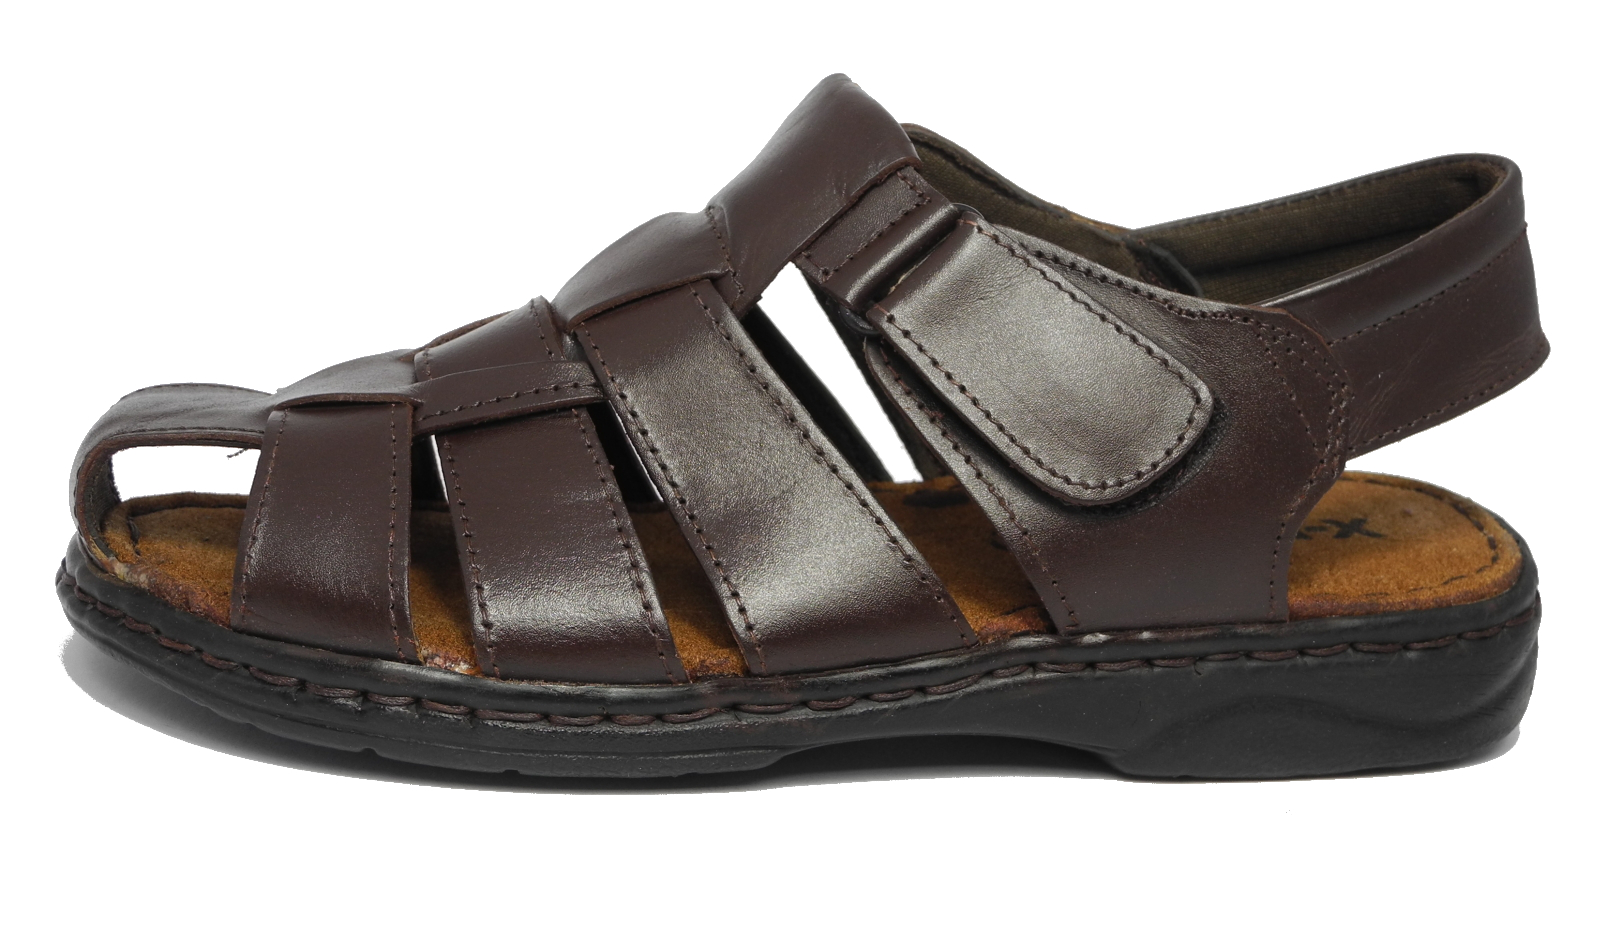 Black enclosed sandals - Mens Leather Closed Toe Velcro Sandals Summer Hiking